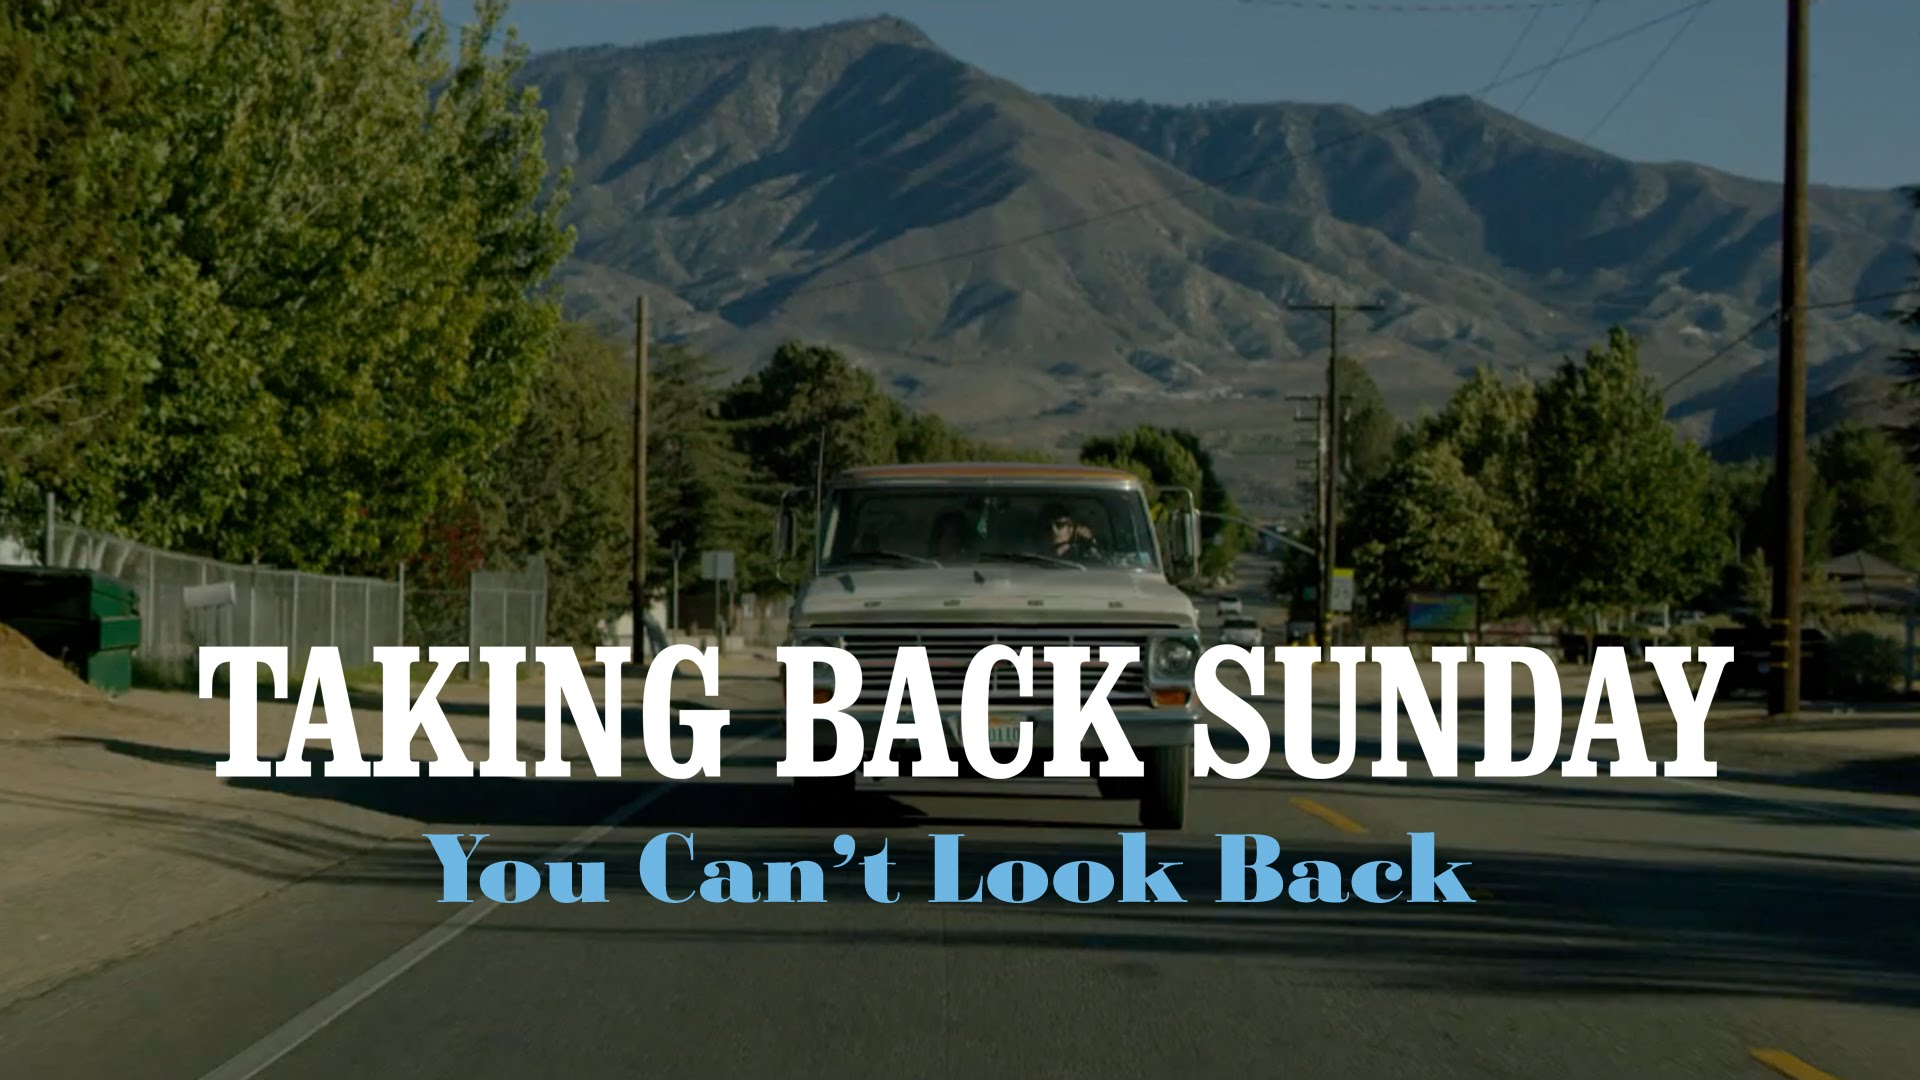 Taking Back Sunday announce summer tour